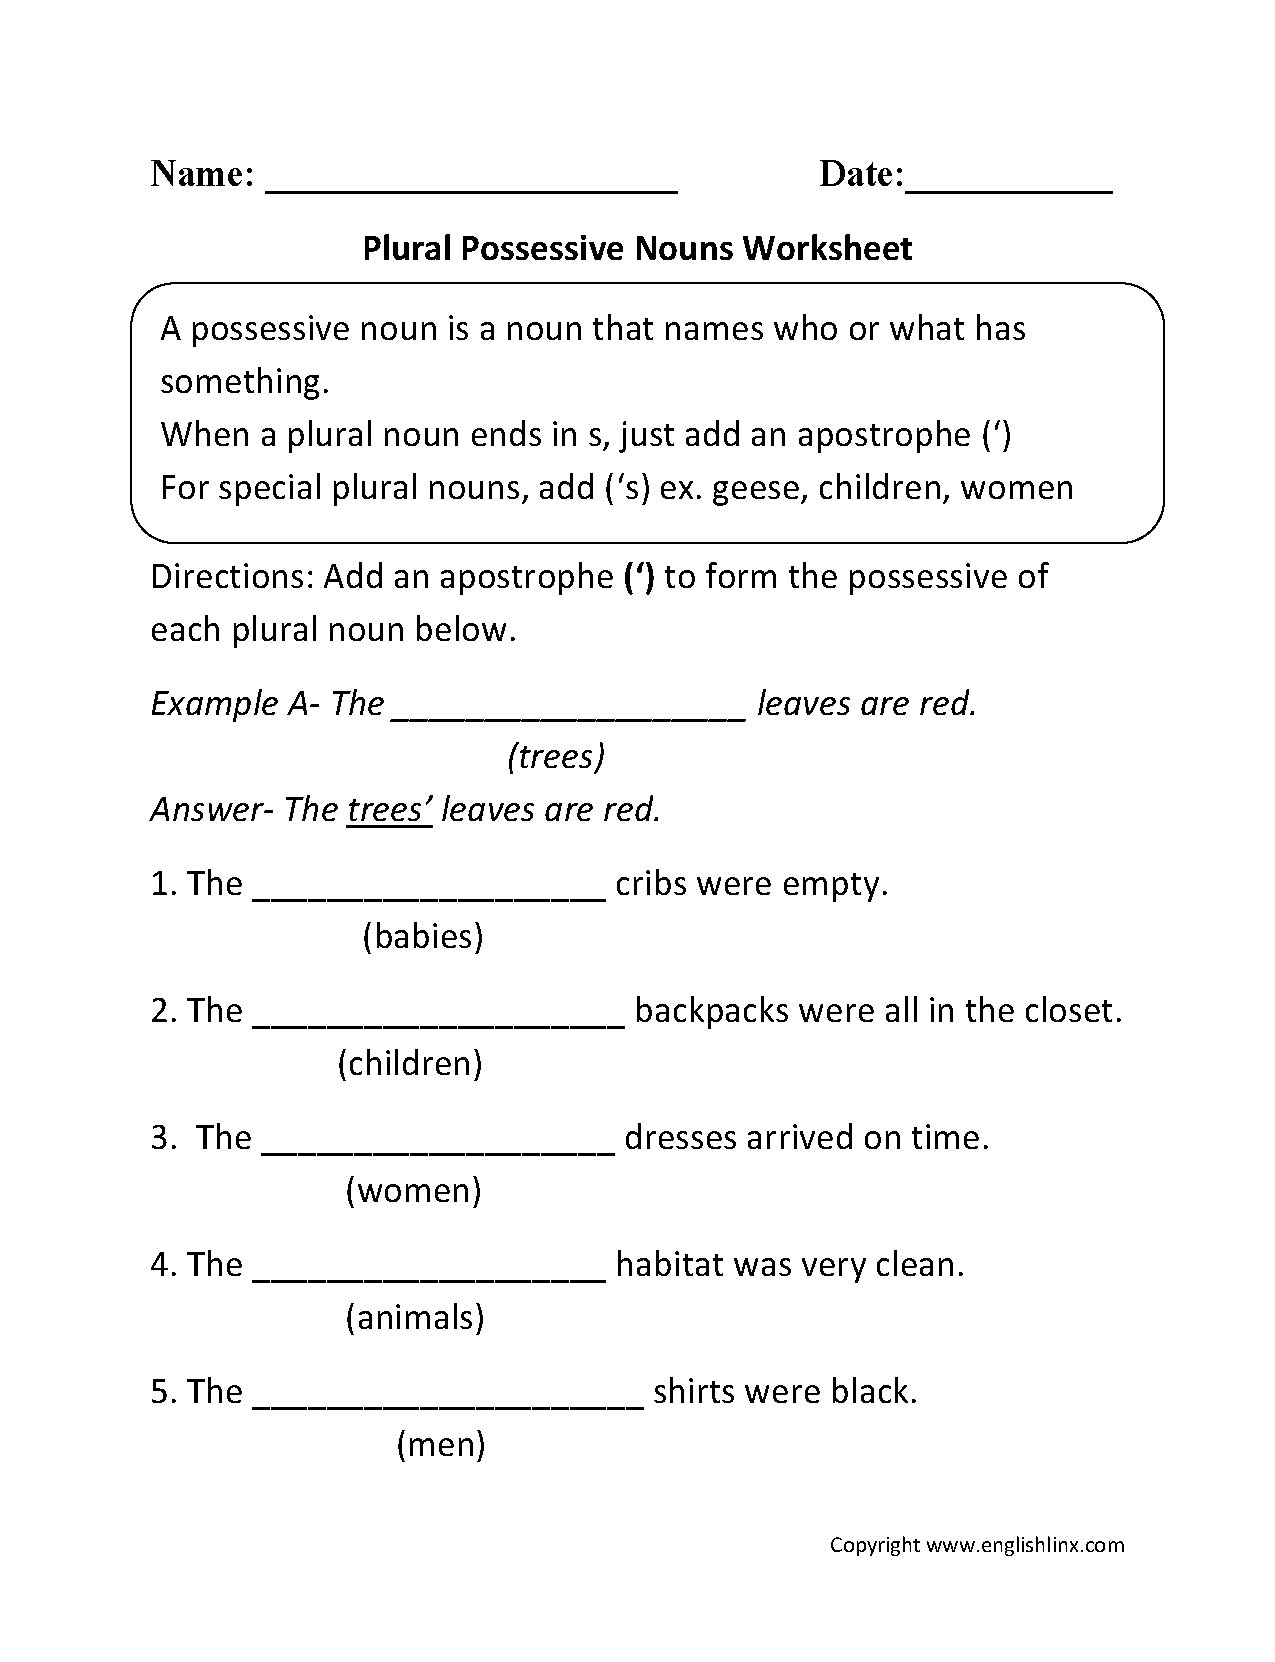 Aldiablosus  Ravishing Nouns Worksheets  Possessive Nouns Worksheets With Hot Possessive Nouns Worksheets With Endearing Worksheets Following Directions Also Equilibrium Worksheets In Addition Year  Maths Worksheets Free And Printable Worksheets For Math As Well As Tessellation Patterns Worksheets Additionally Worksheet On Measurement From Englishlinxcom With Aldiablosus  Hot Nouns Worksheets  Possessive Nouns Worksheets With Endearing Possessive Nouns Worksheets And Ravishing Worksheets Following Directions Also Equilibrium Worksheets In Addition Year  Maths Worksheets Free From Englishlinxcom